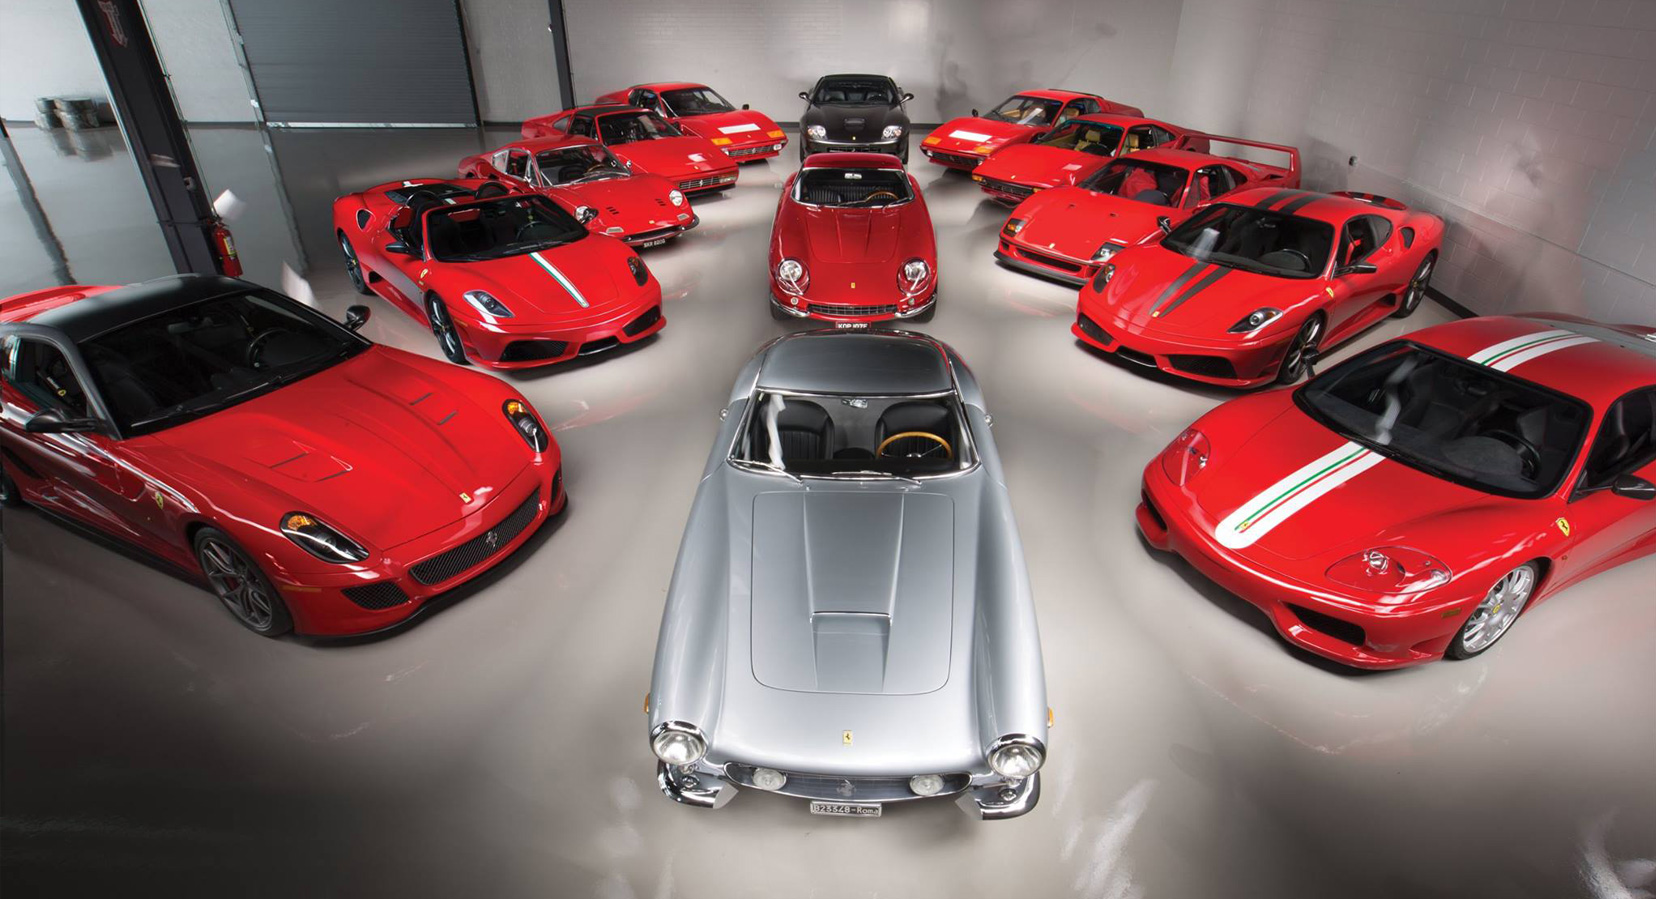 RM Sotheby's is Auctioning Some of the World's Finest Ferraris